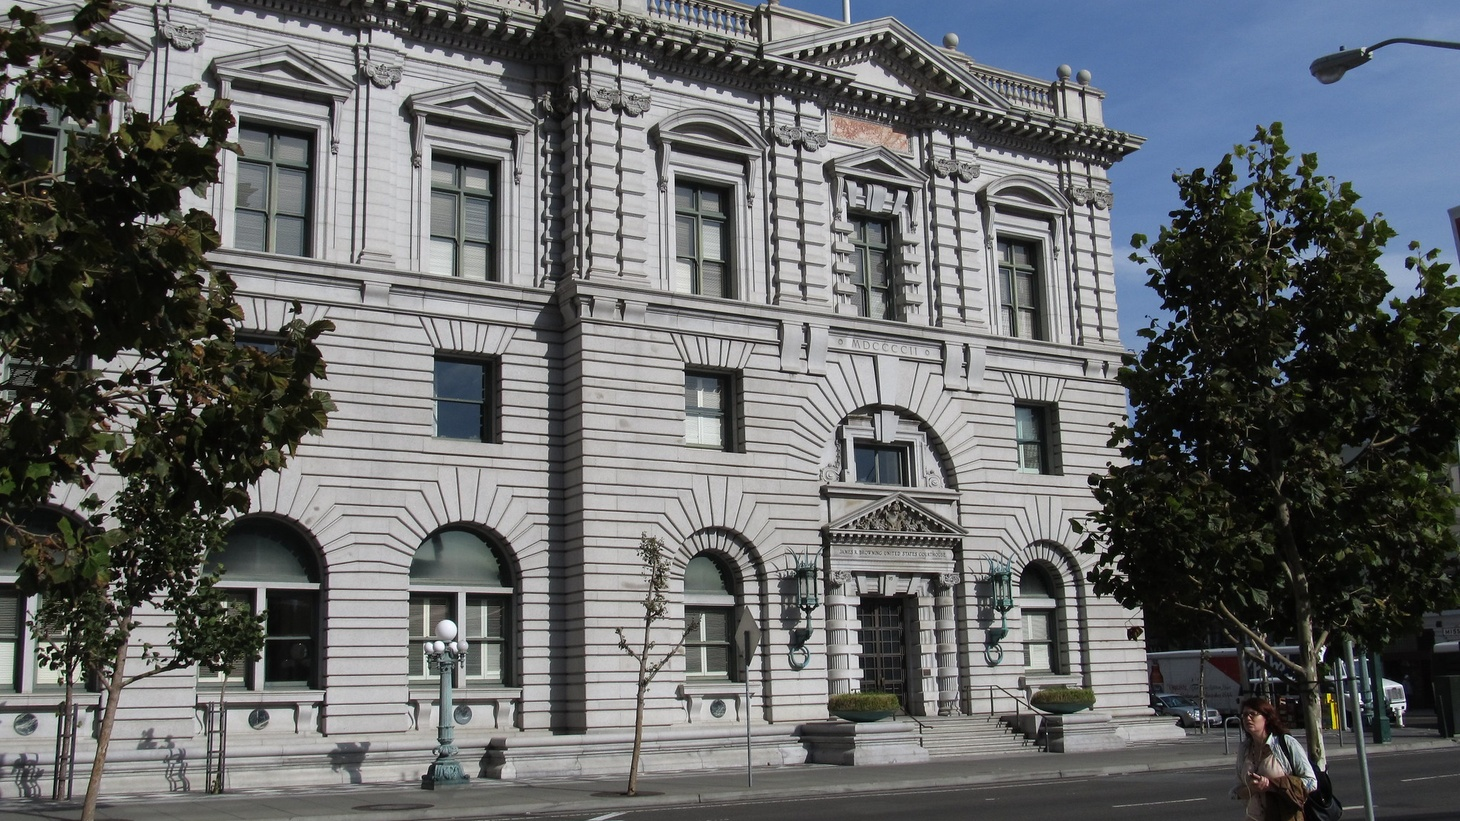 United States Court of Appeals for the Ninth Circuit, James R. Browning United States Courthouse, San Francisco, California.